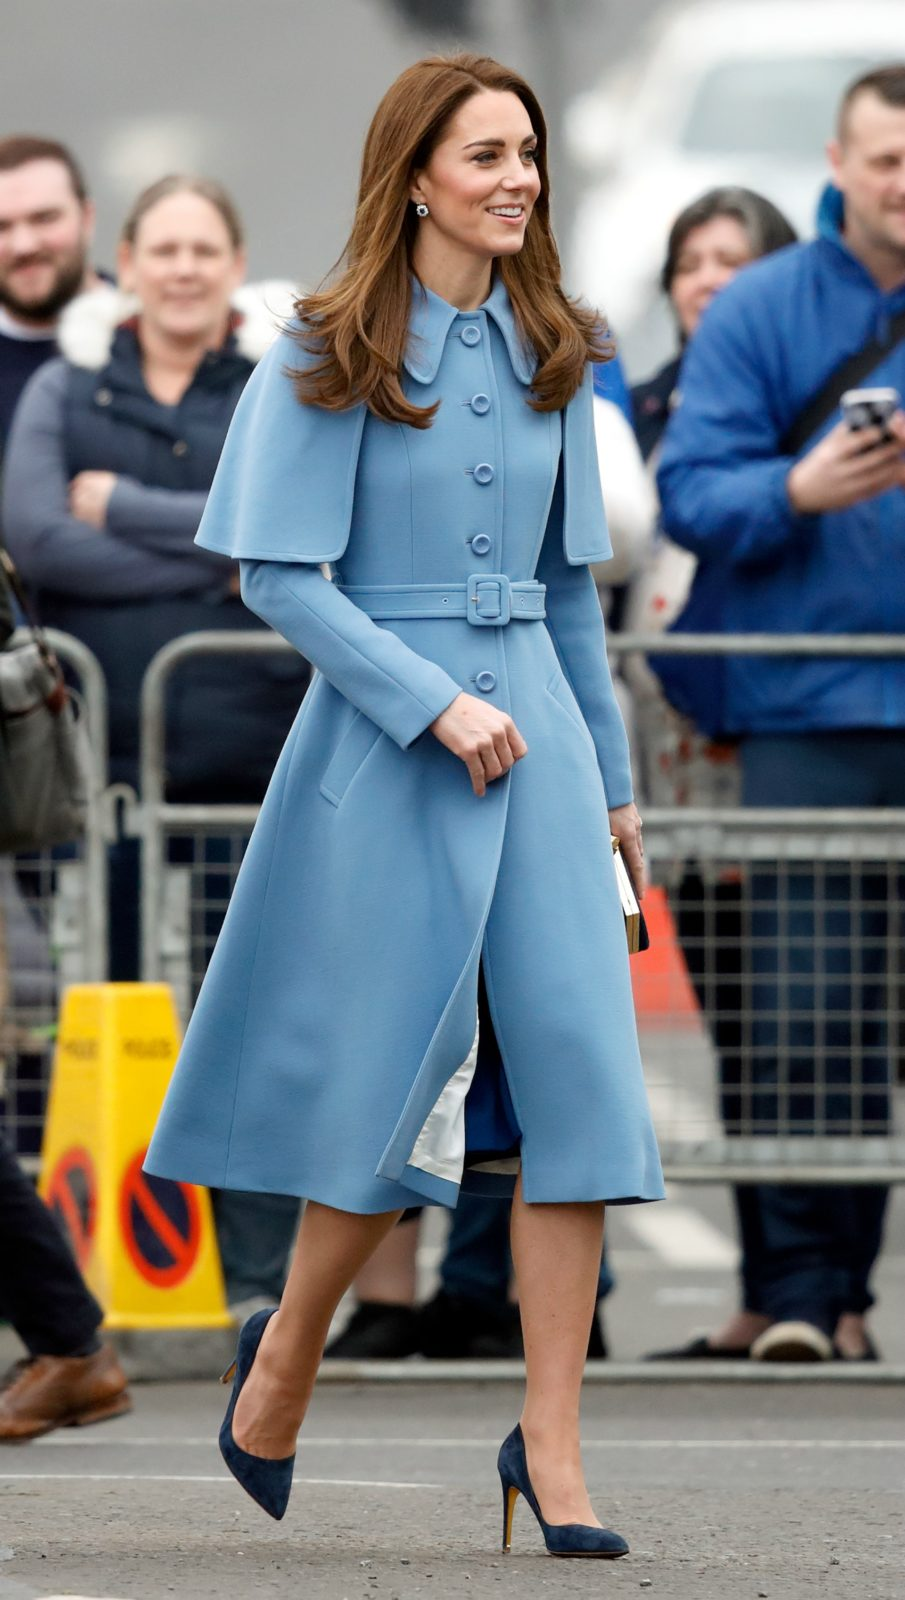 Duchess Catherine stepped out in a fashionable blue outfit for a day of royal engagements in Northern Ireland.